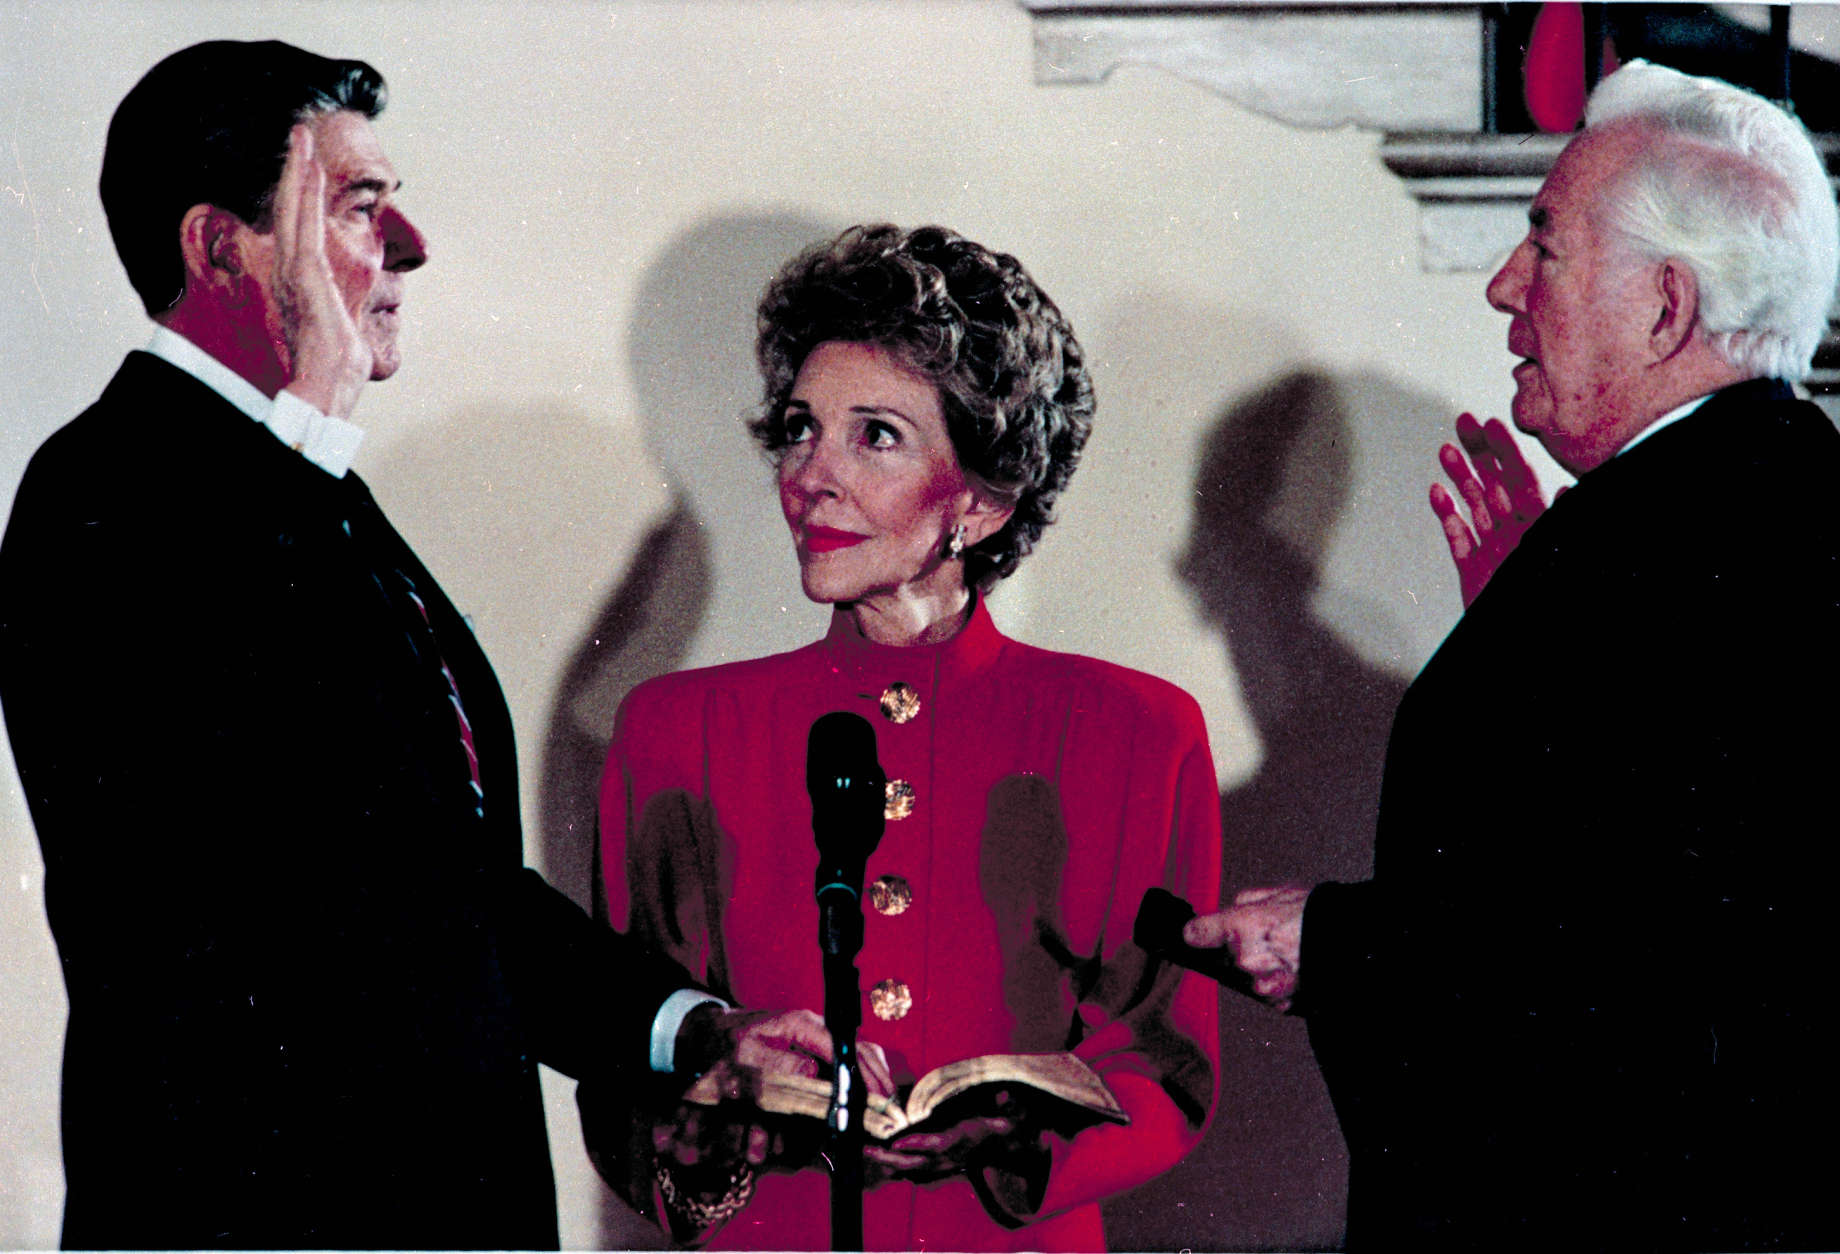 President Ronald Reagan takes the oath of office administered by Chief Justice Warren Burger in a private White House ceremony for a second term in Washington, D.C., Sunday, Jan. 20, 1985.  First Lady Nancy Reagan holds the bible.  (AP Photo/Ira Schwarz)